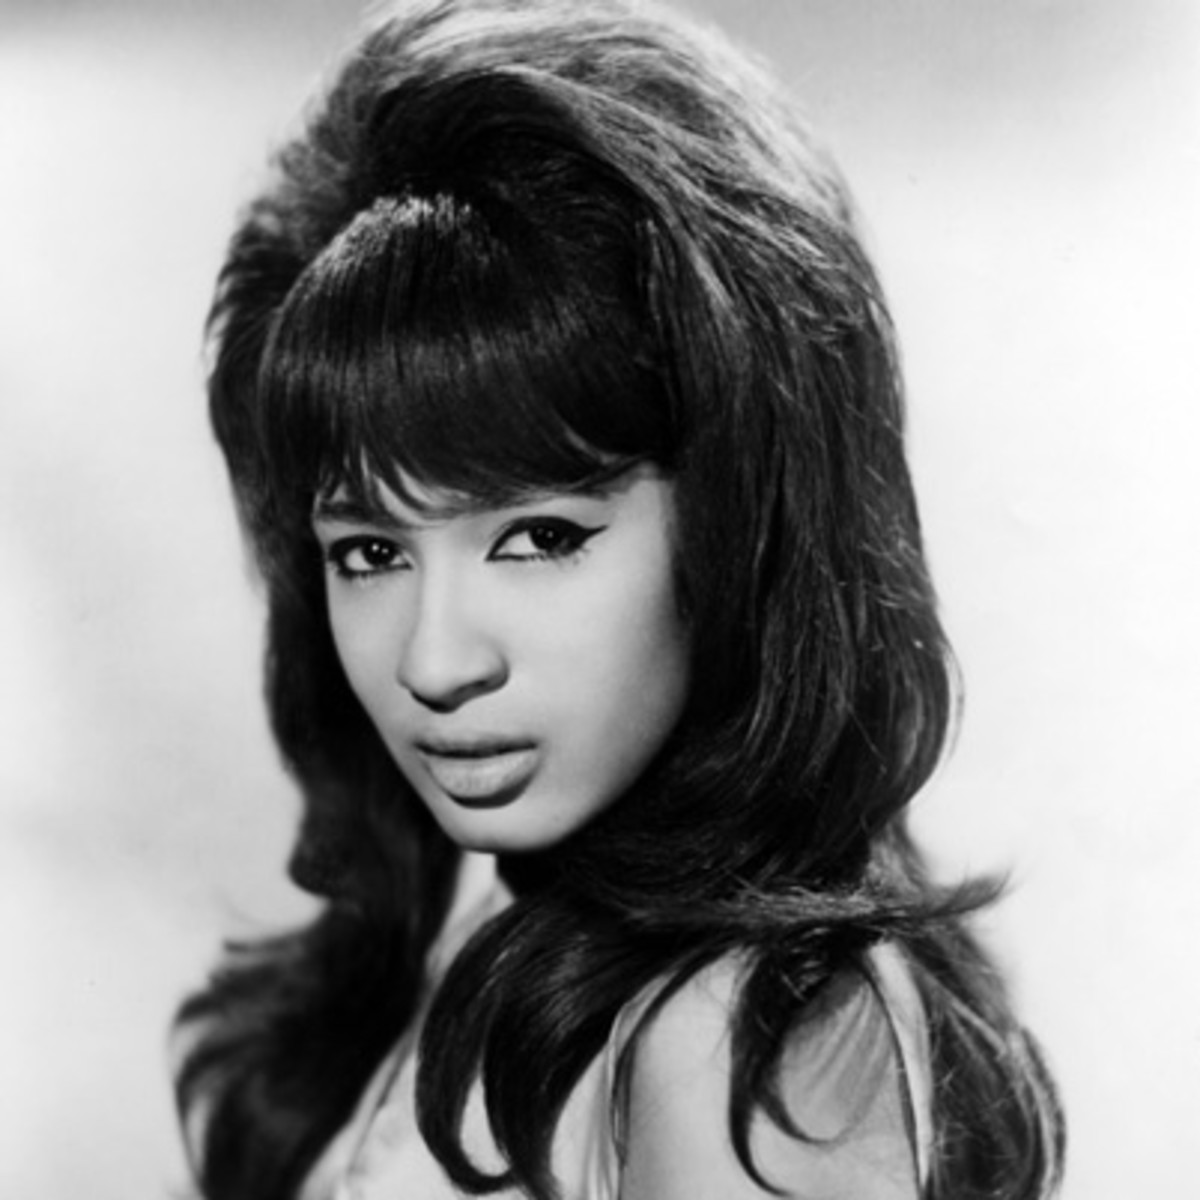 Ronnie Spector - Singer - Biography